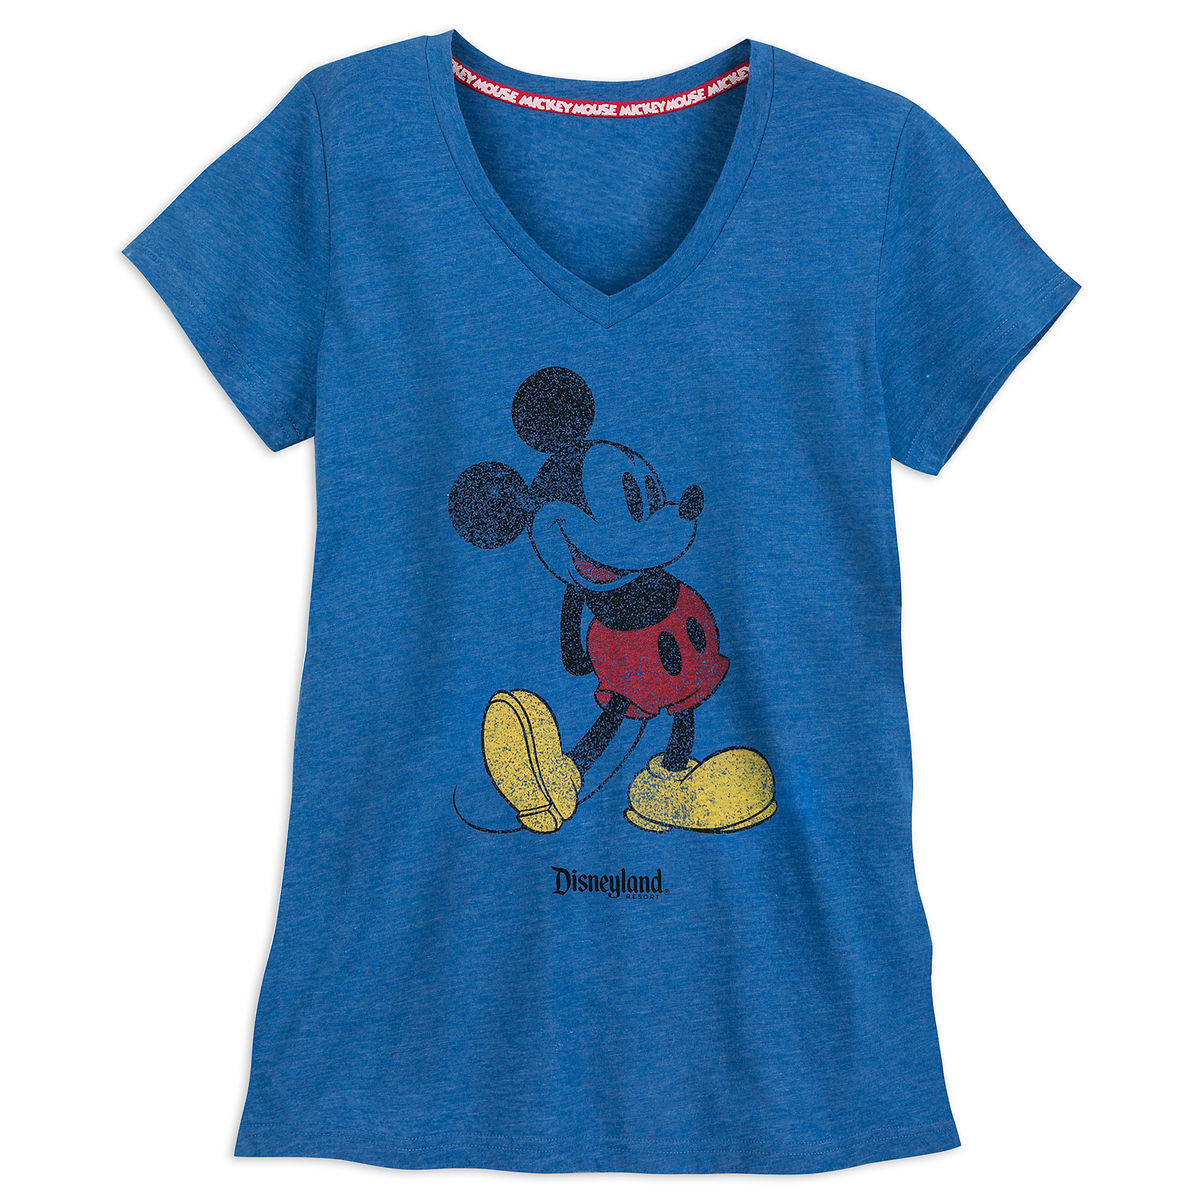 b592ae6d1f4 Product Image of Mickey Mouse Classic T-Shirt for Women - Disneyland - Blue